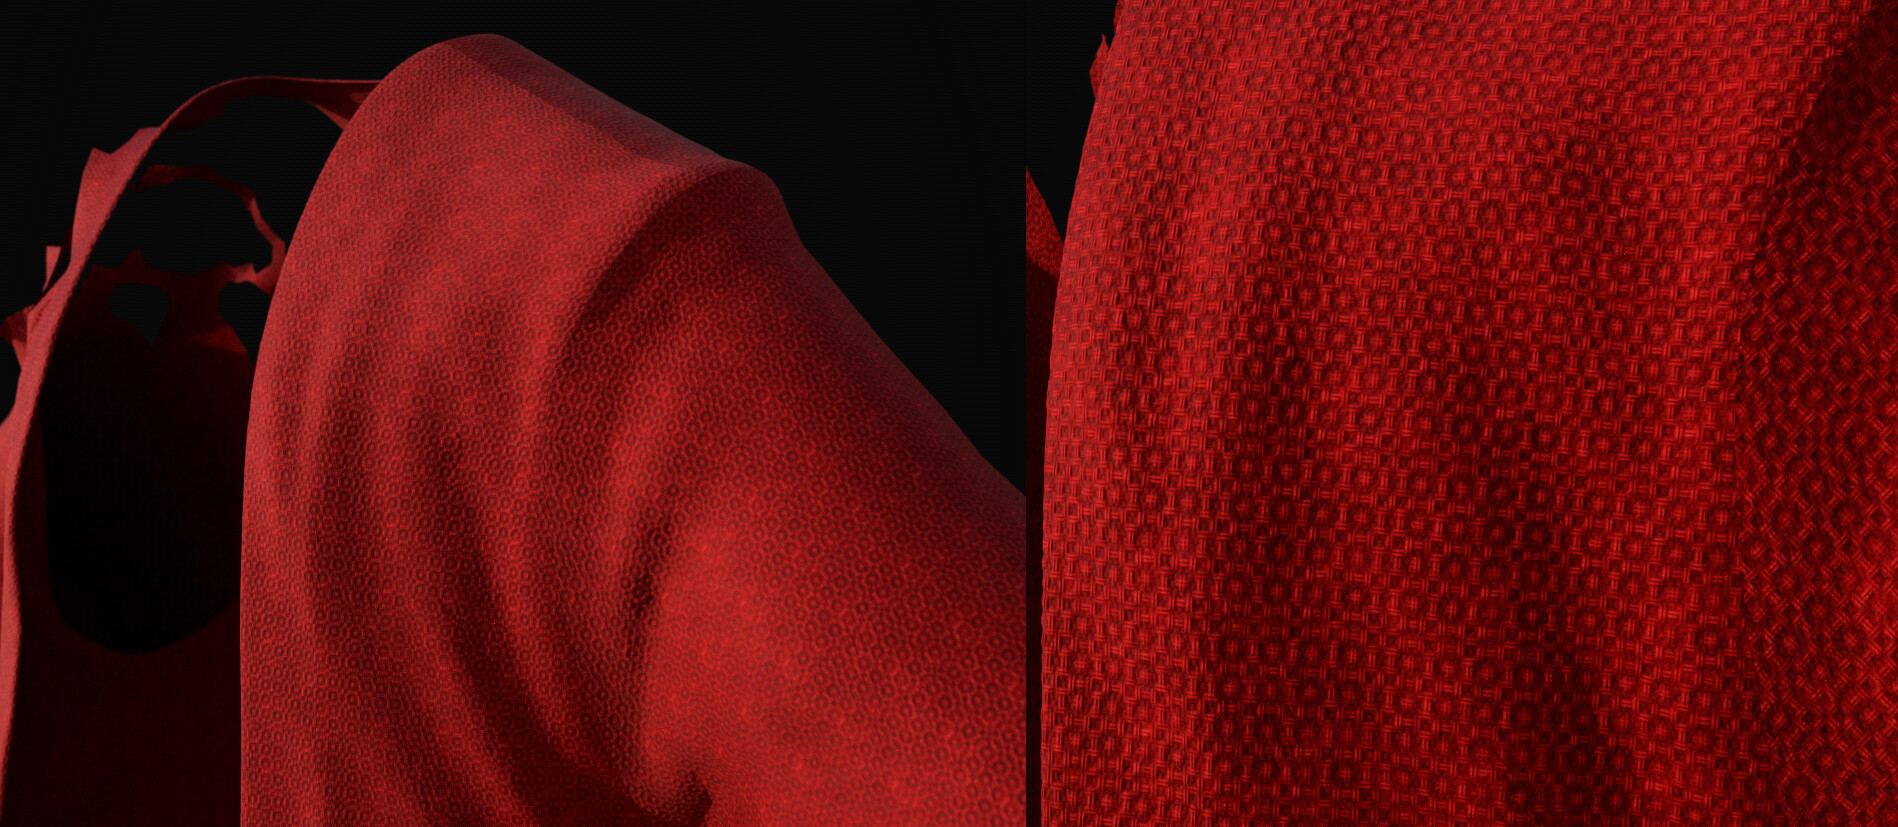 Substance Design + Painter for the Cloth/patterns.